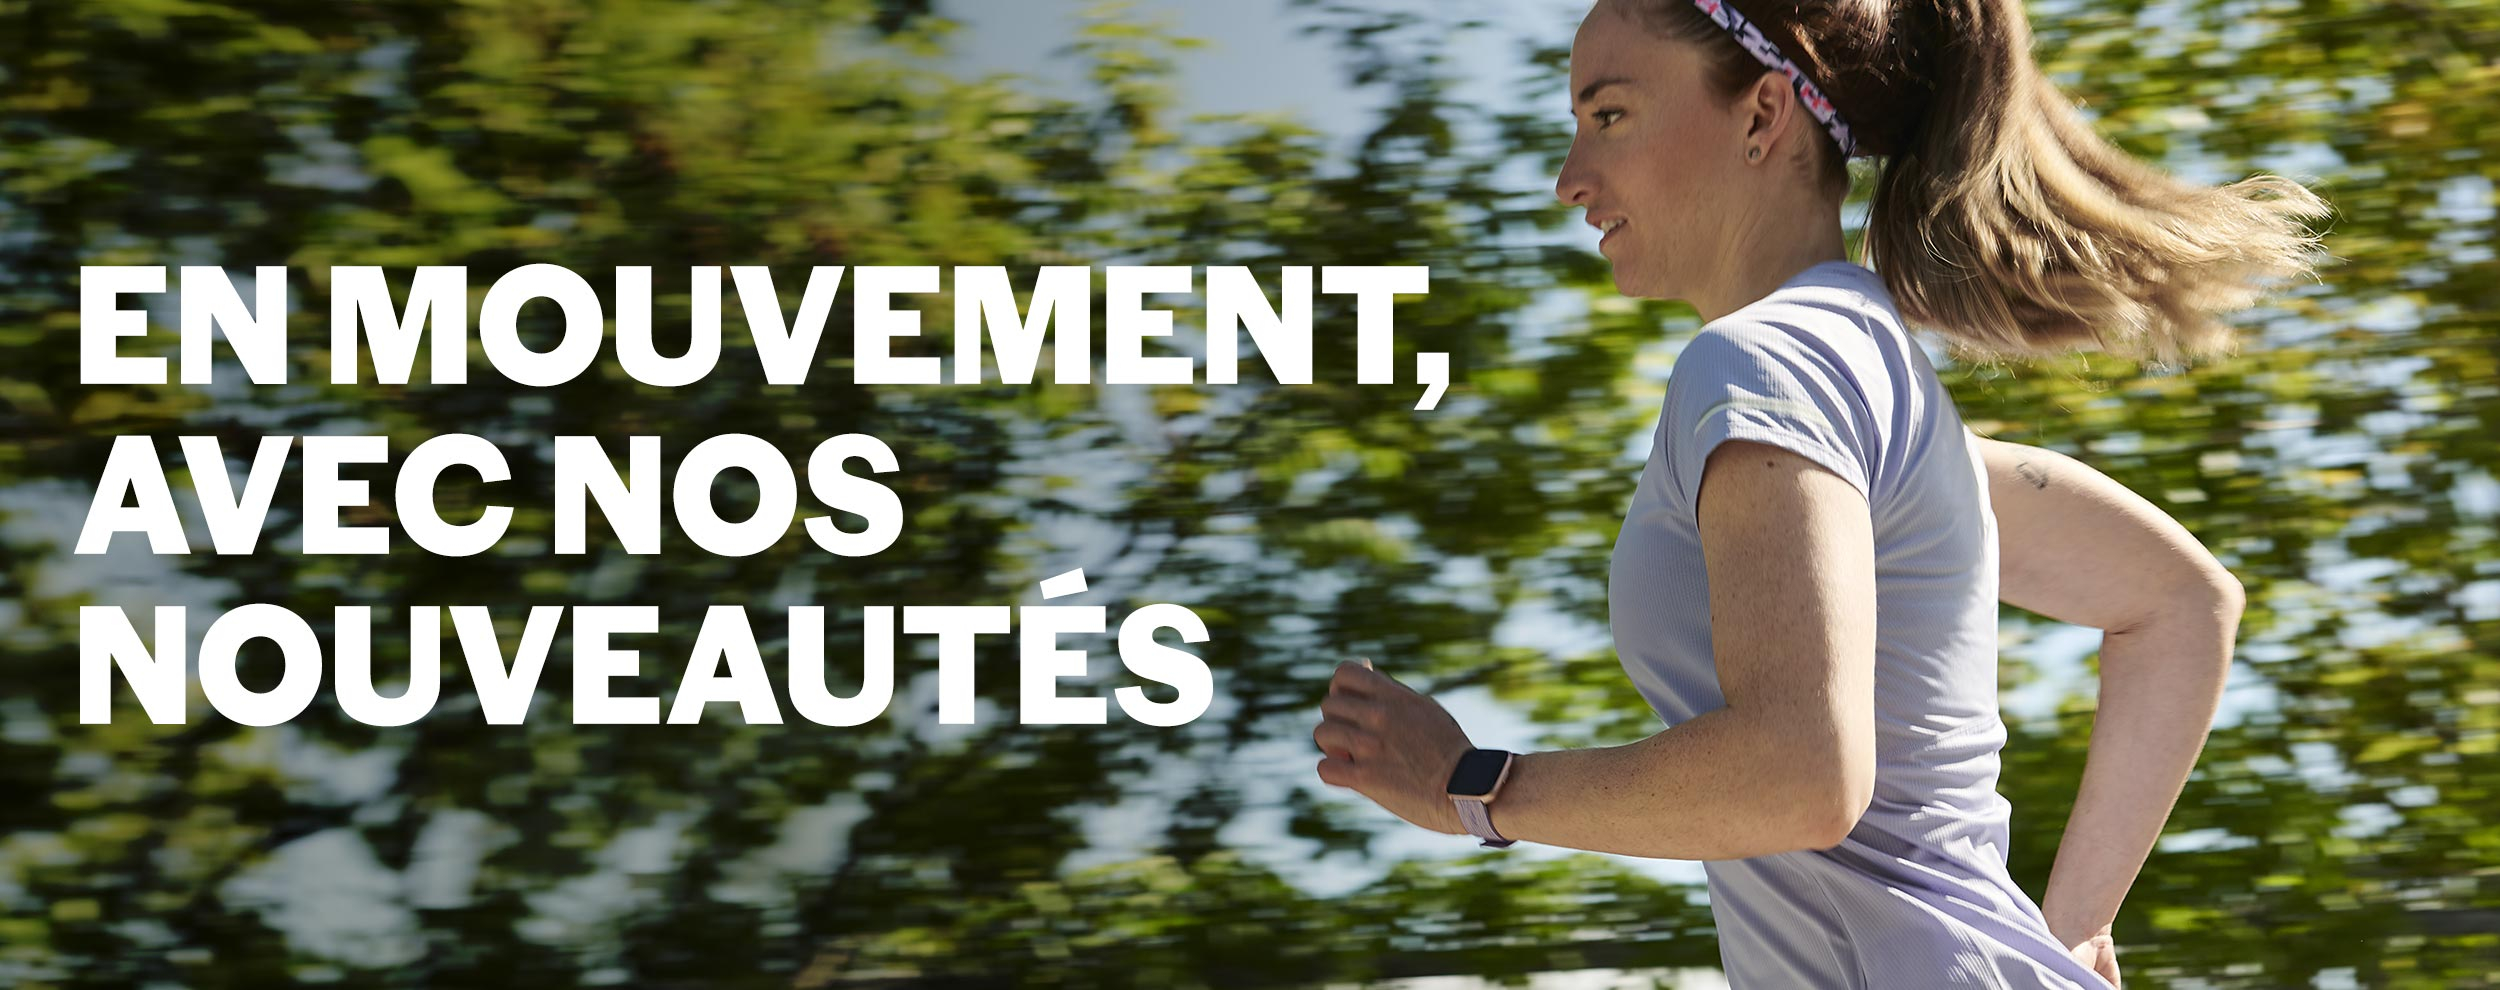 header lookbook en mouvement course femmes